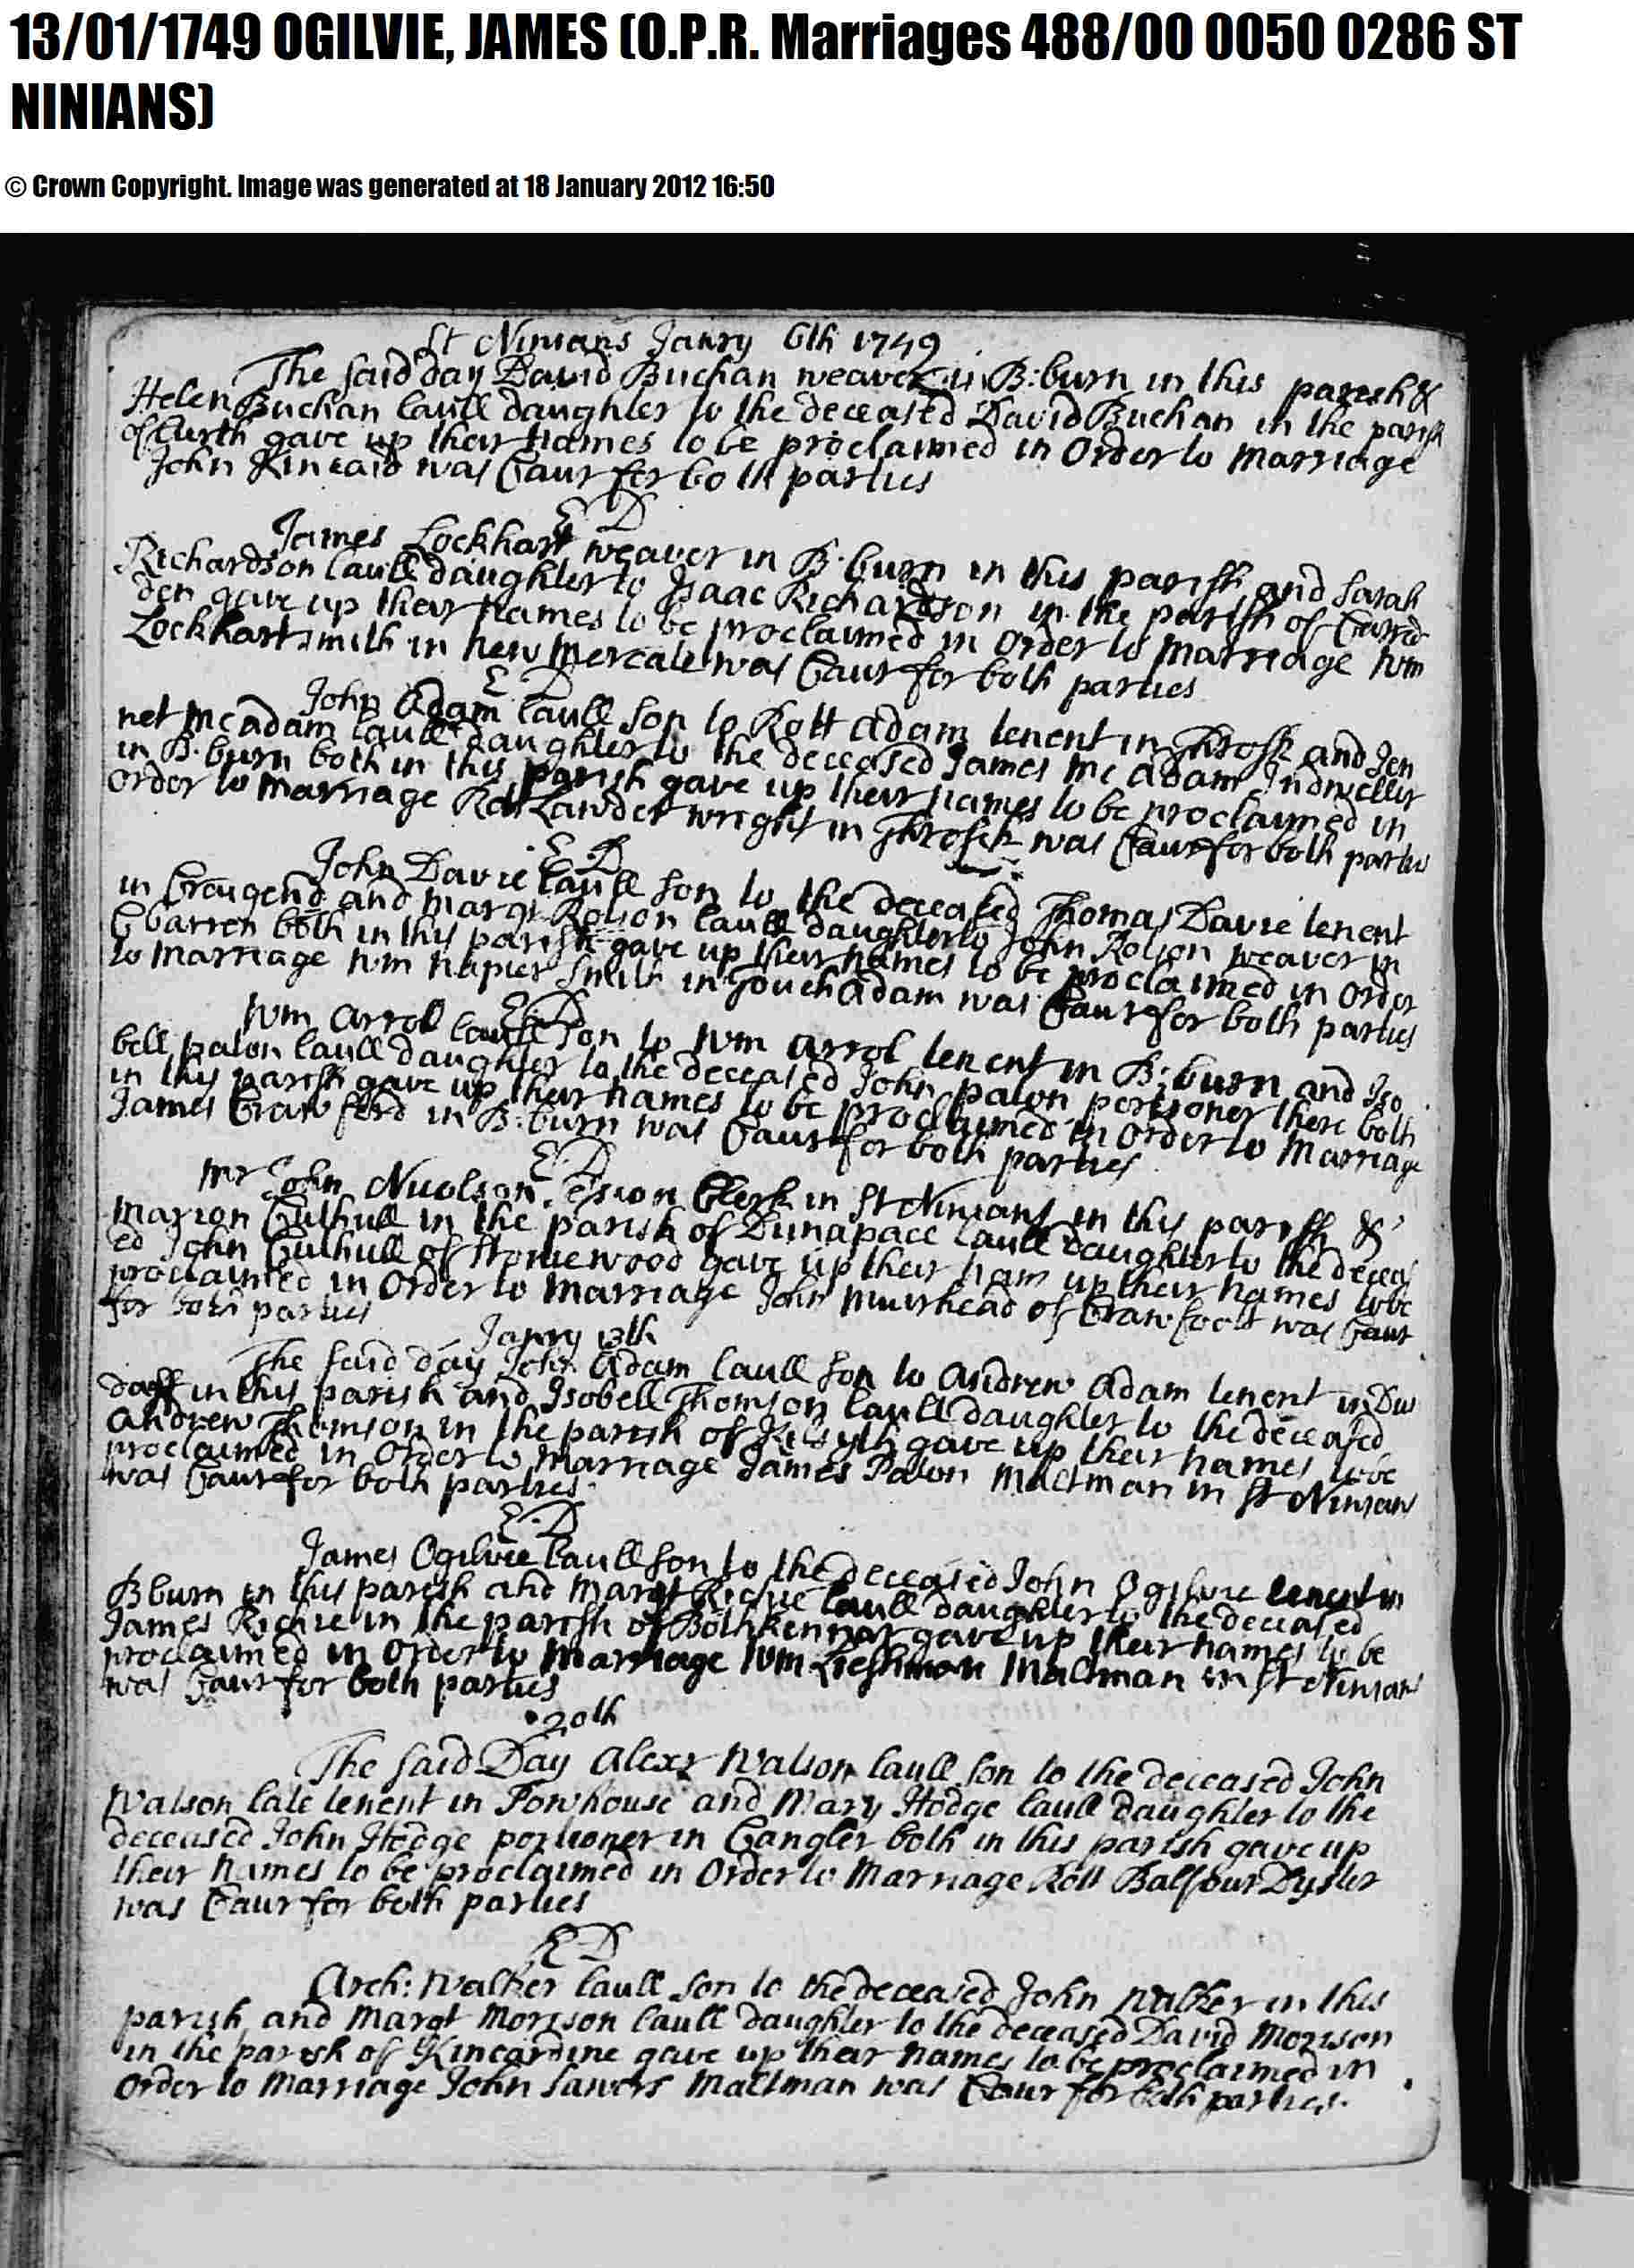 Birth certificate genealogy and jure sanguinis marriage record 13 jan 1749 for james ogilvie and margaret richie aiddatafo Images